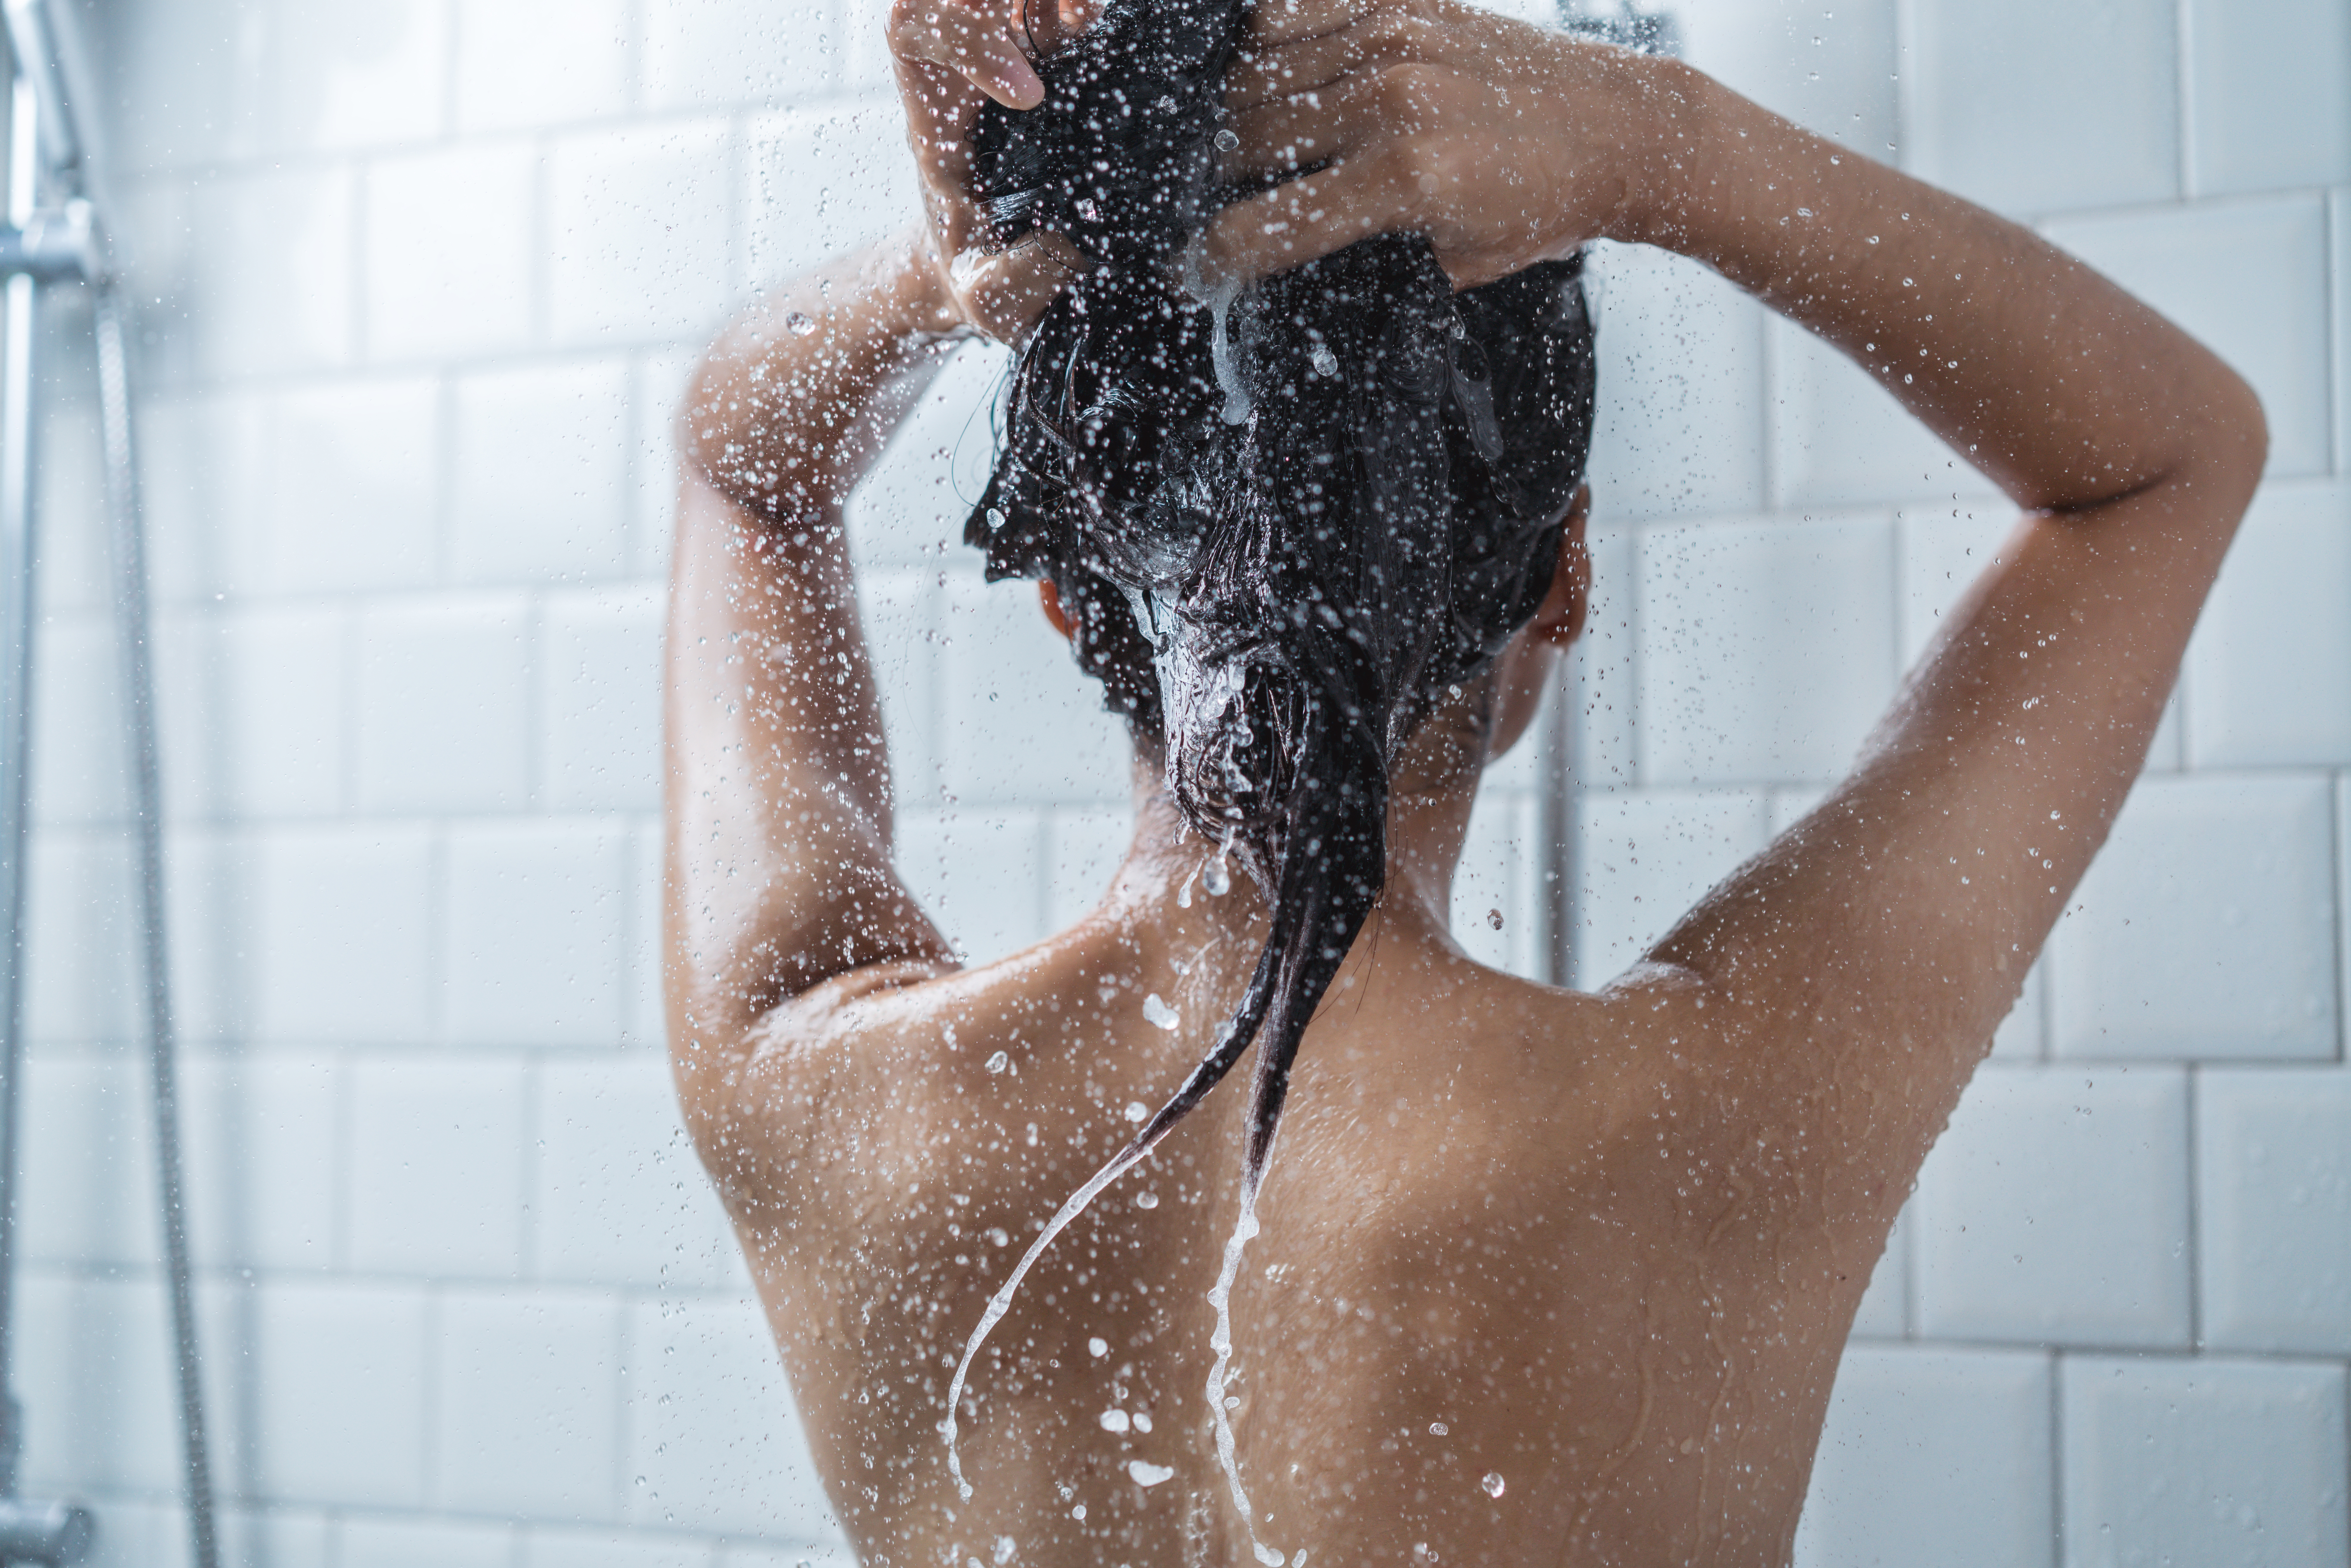 A tanned woman with her back to us in the shower, washing her hair with shampoo